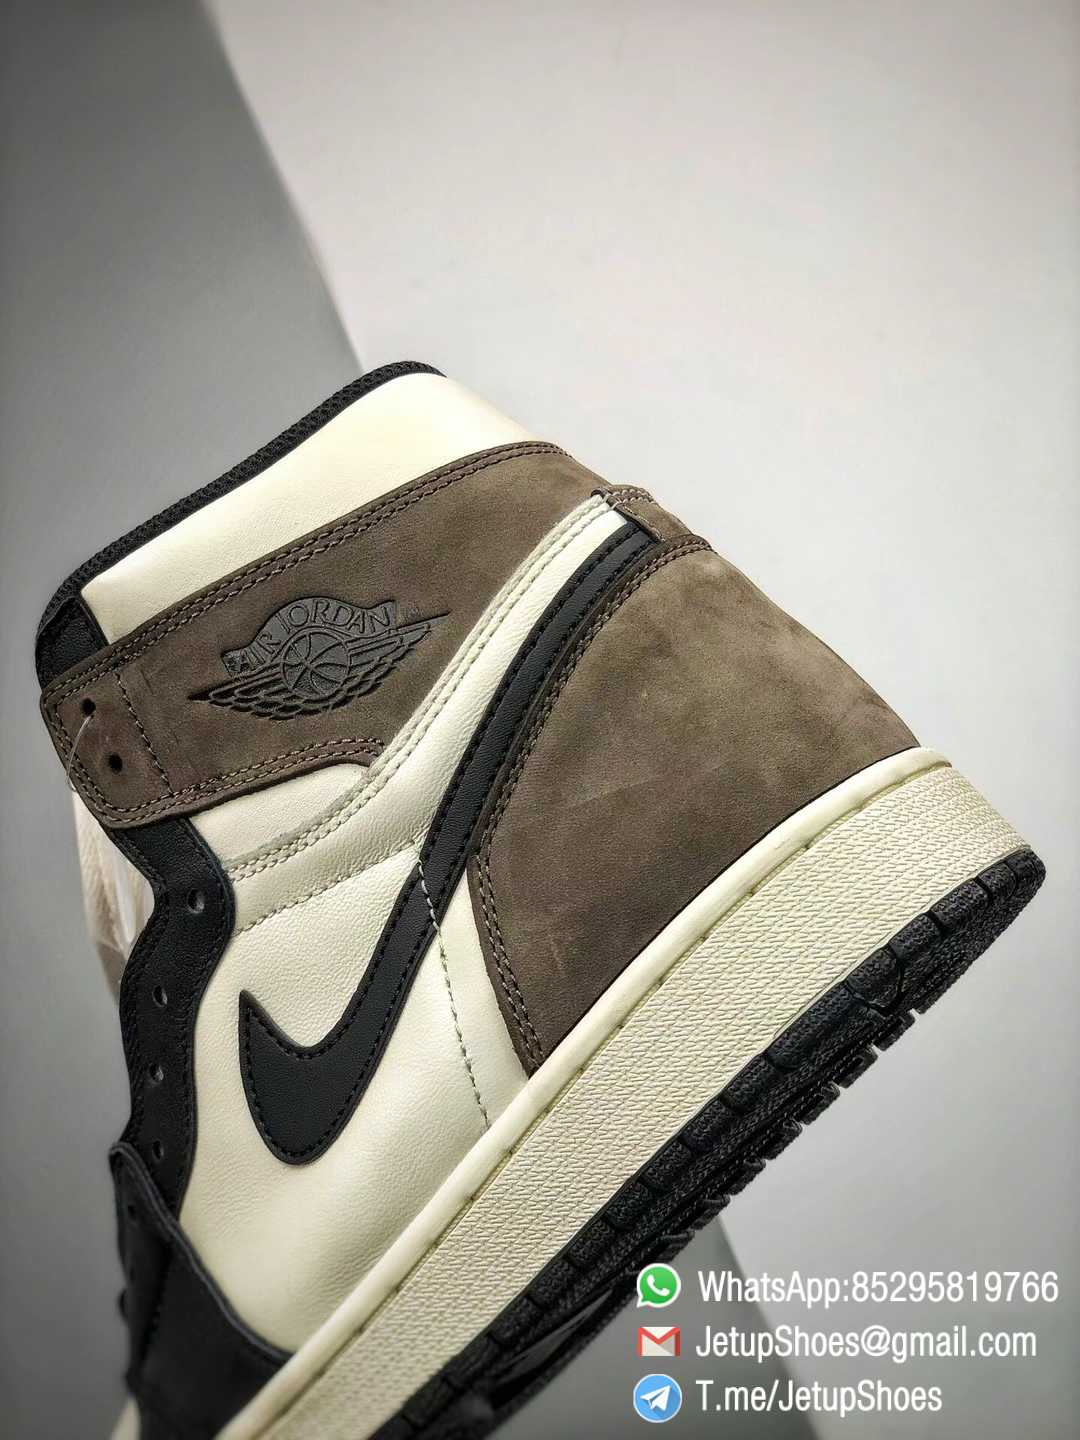 Best Replica Air Jordan 1 Retro High OG Dark Mocha Off white Leather Base and Black Overylays Top Quality Sneakers 04